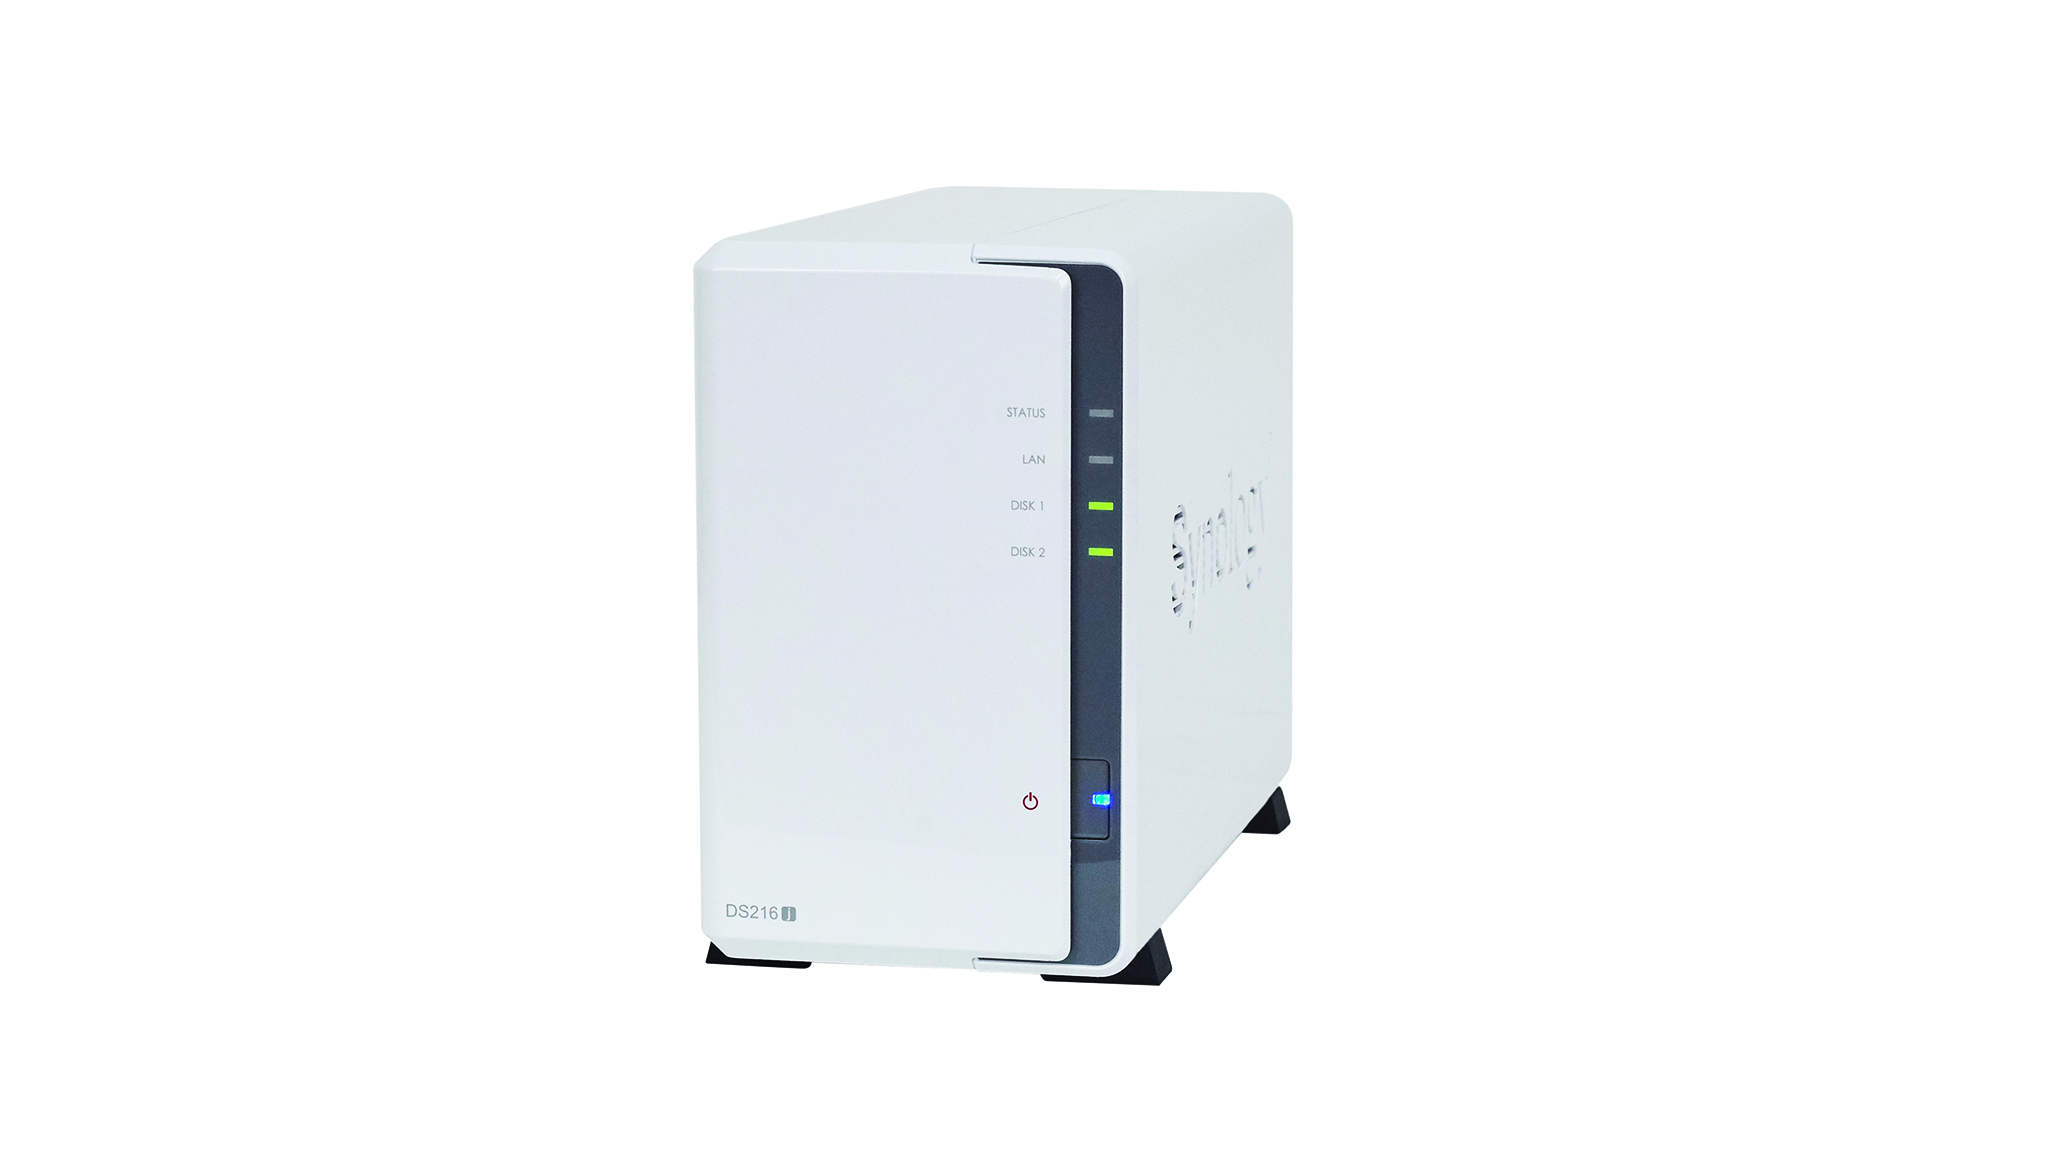 best nas drive 2018 keep your files safe and secure at home from